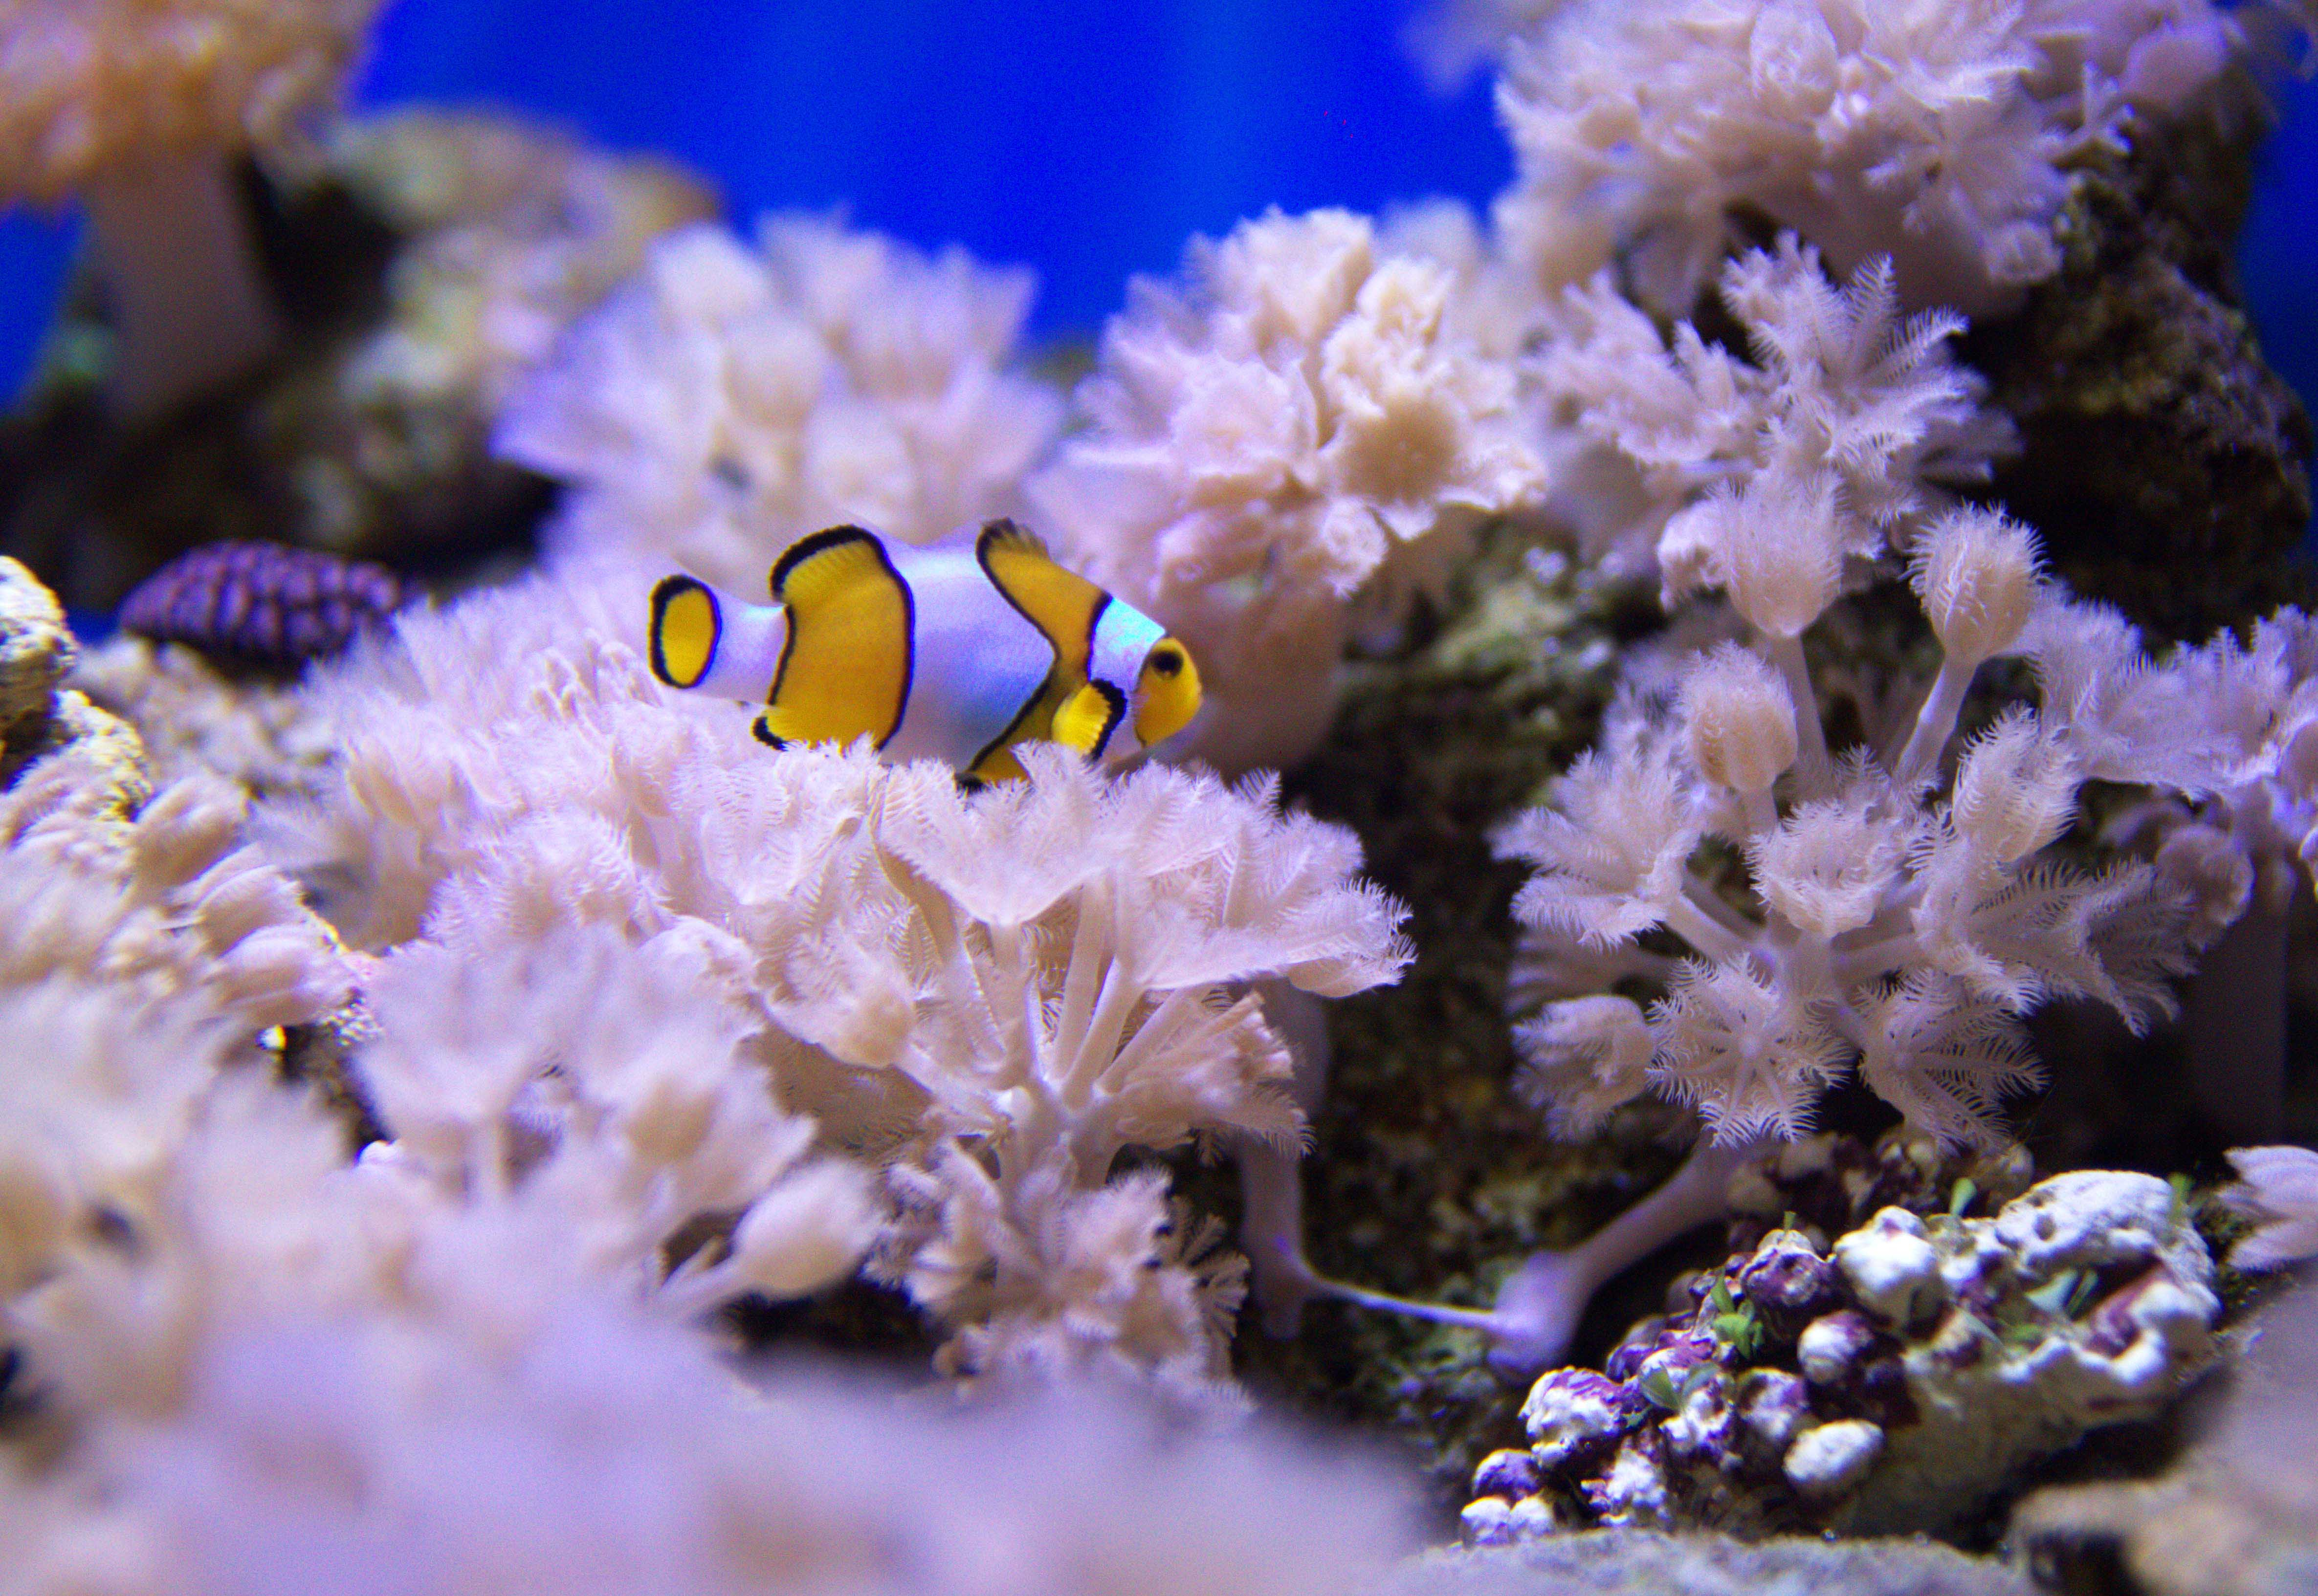 A yellow Clown Fish